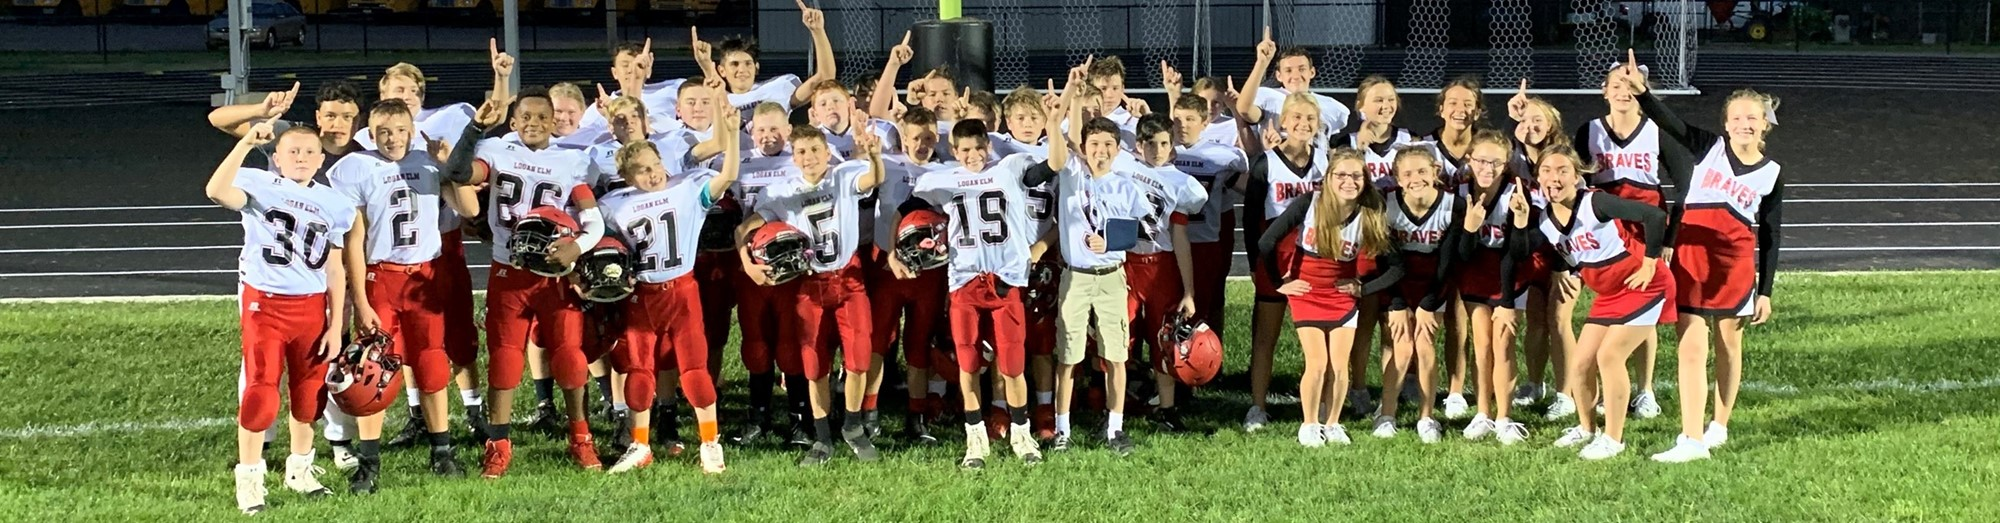 Seventh Grade Football Team 8-0